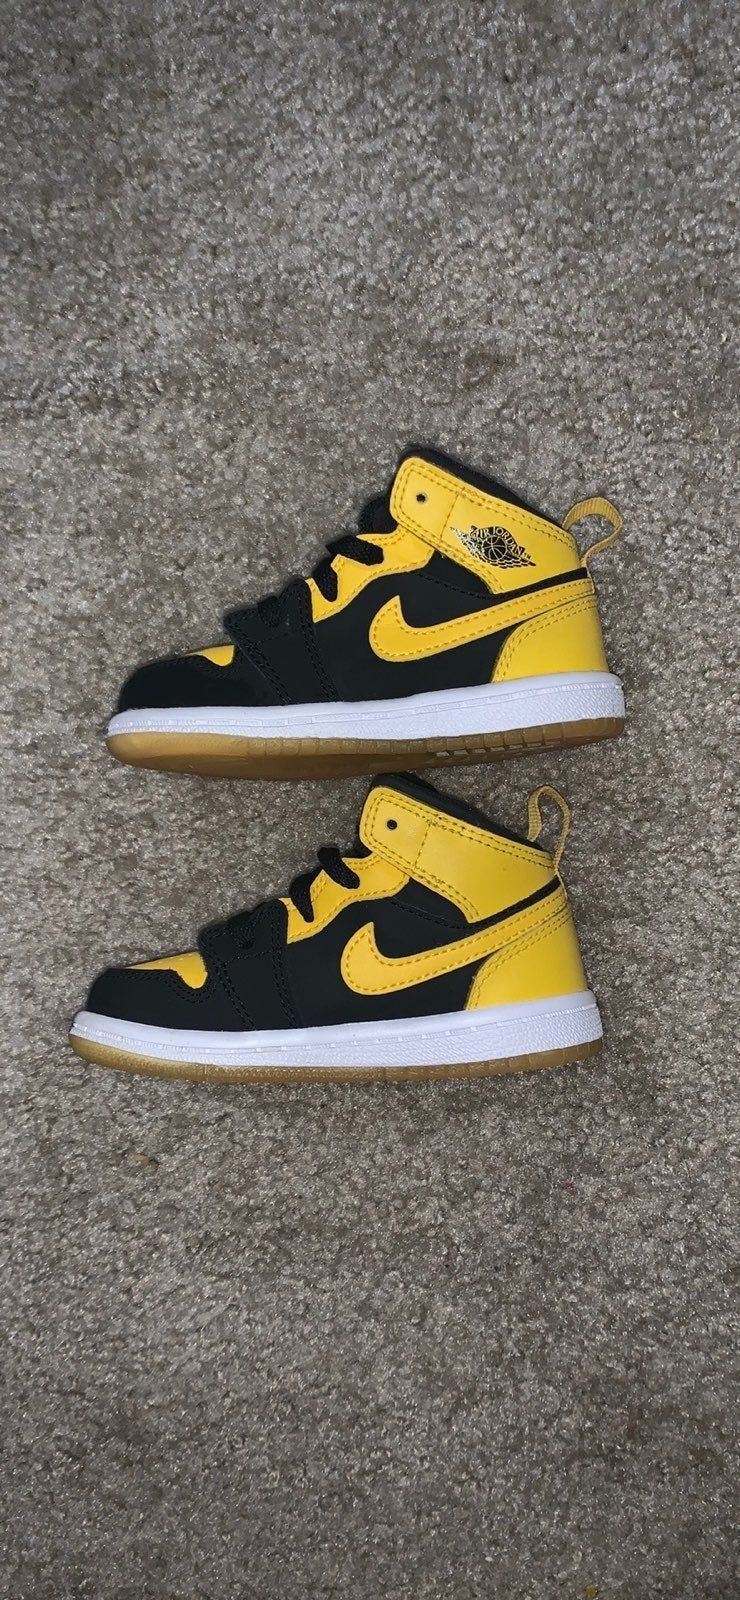 black and yellow 1s